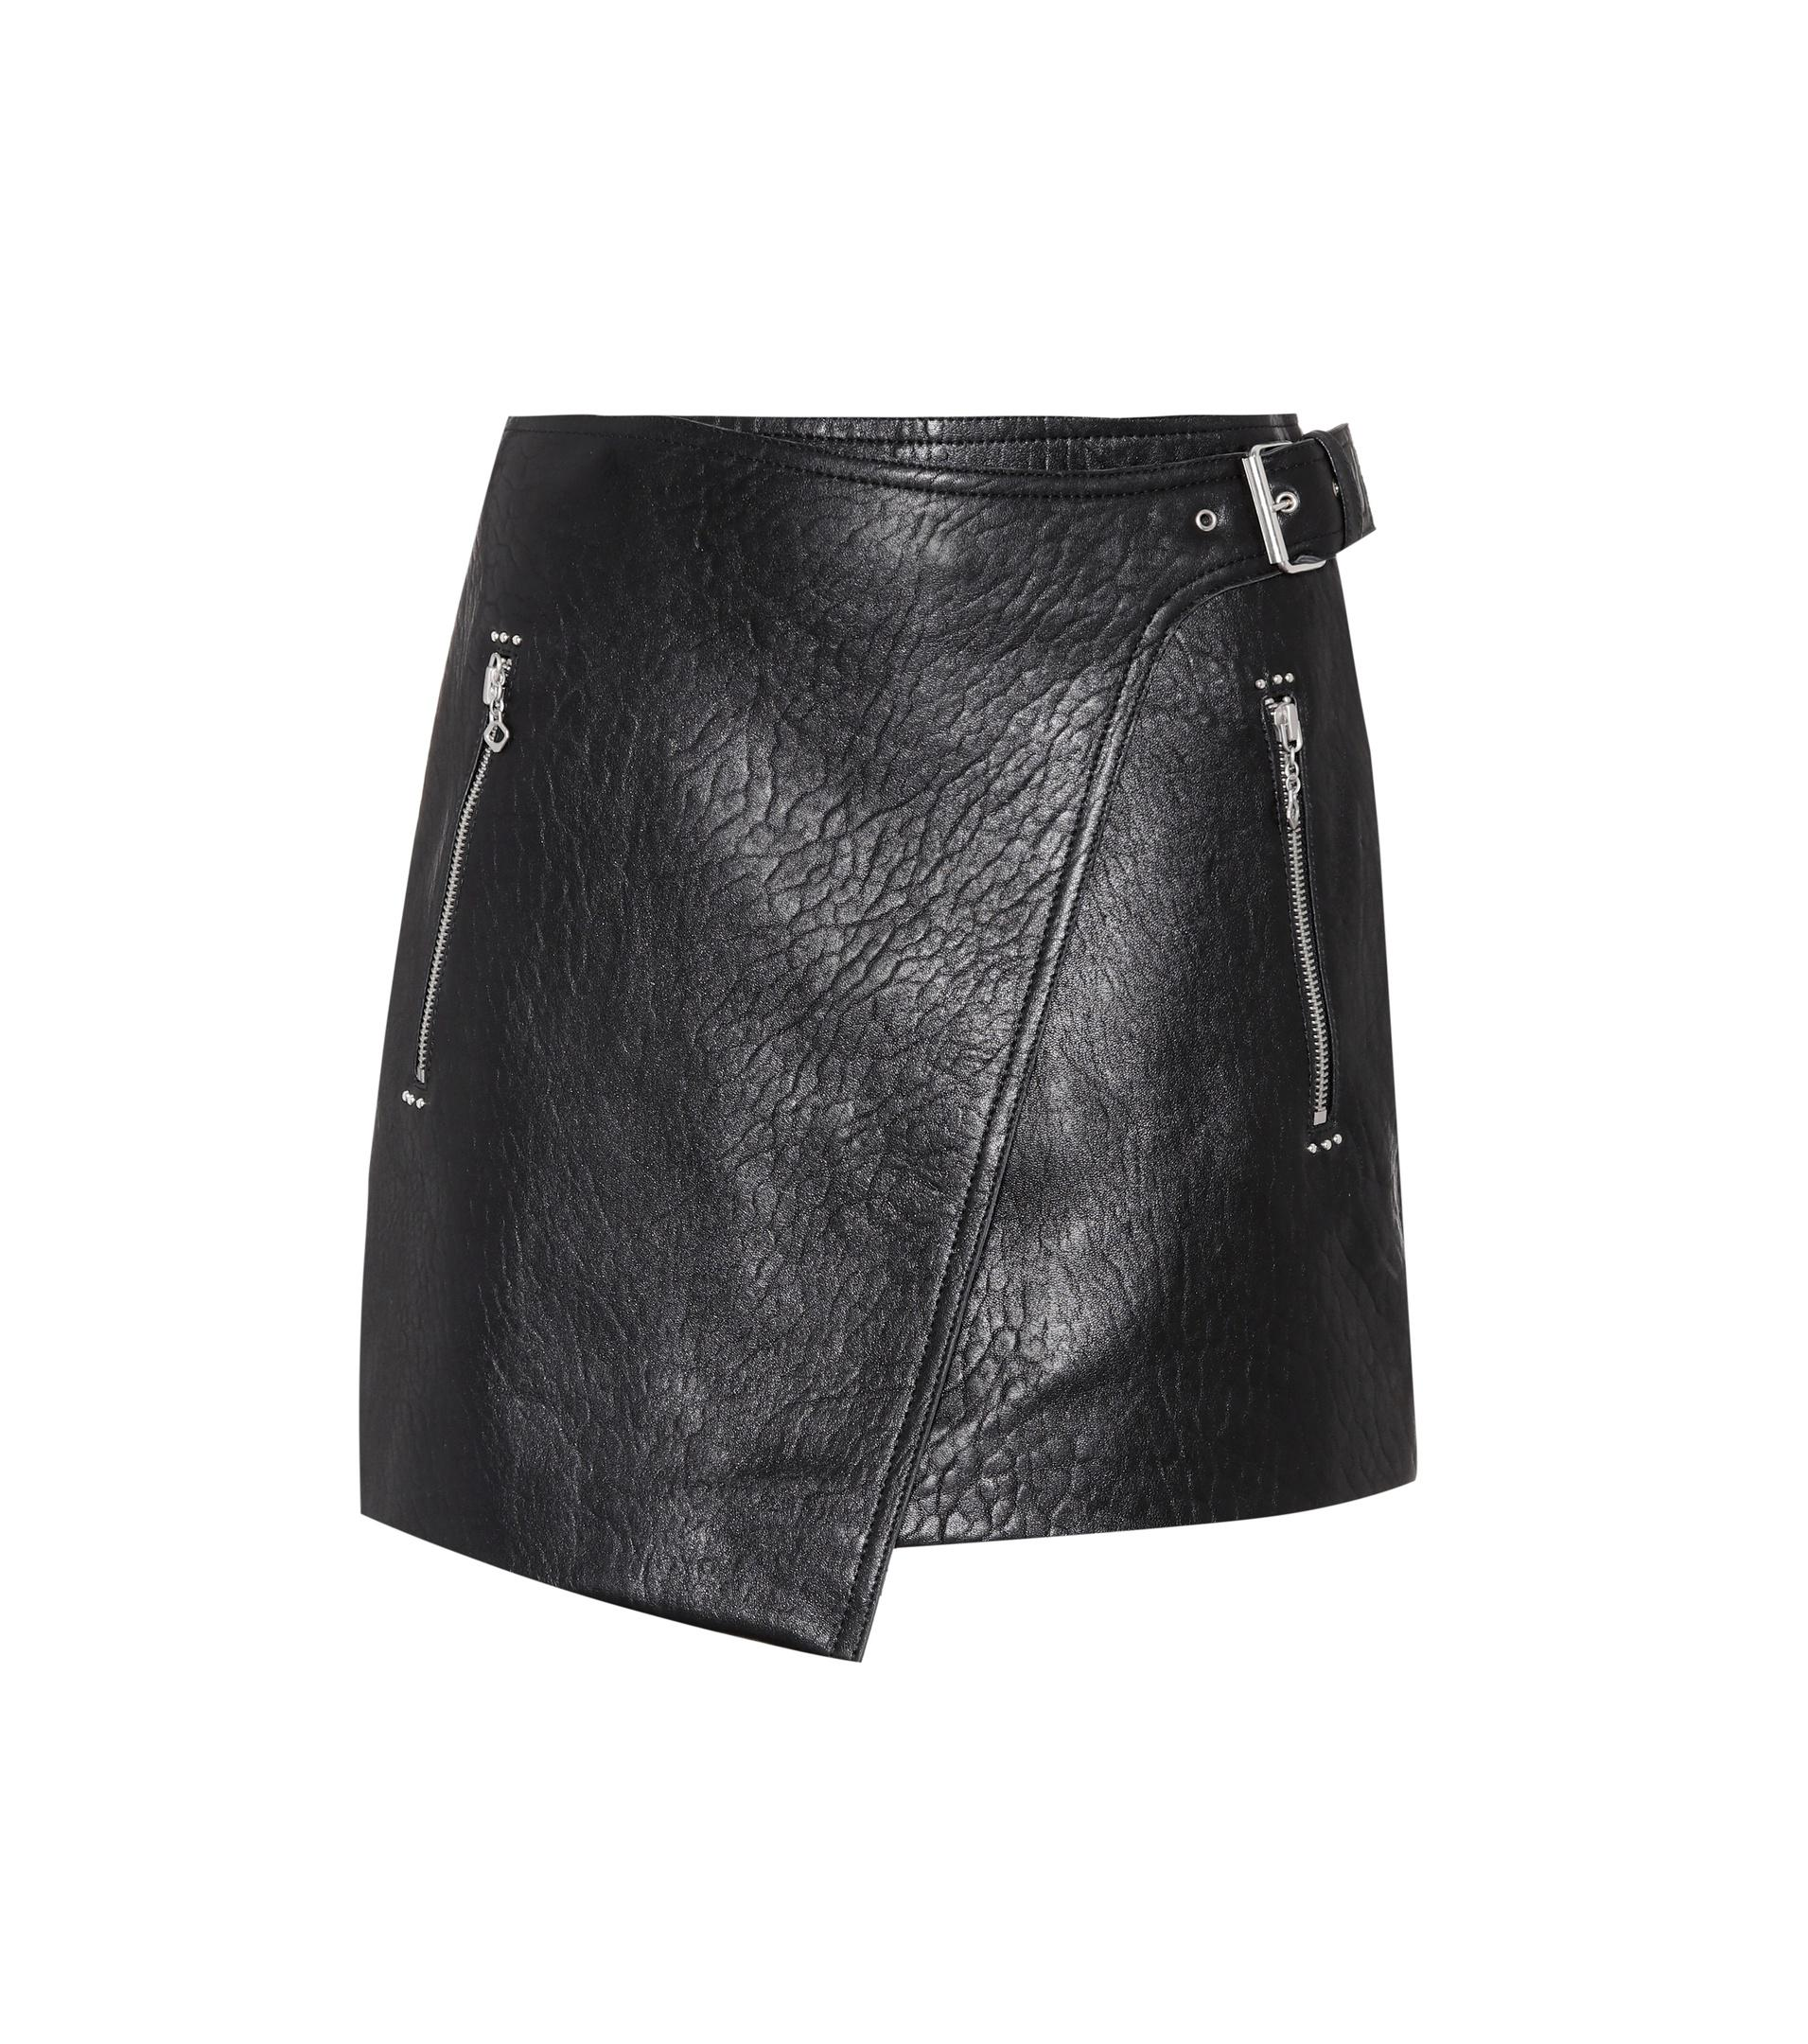 e738142ad5 Gallery. Previously sold at: Mytheresa · Women's Leather Skirts ...